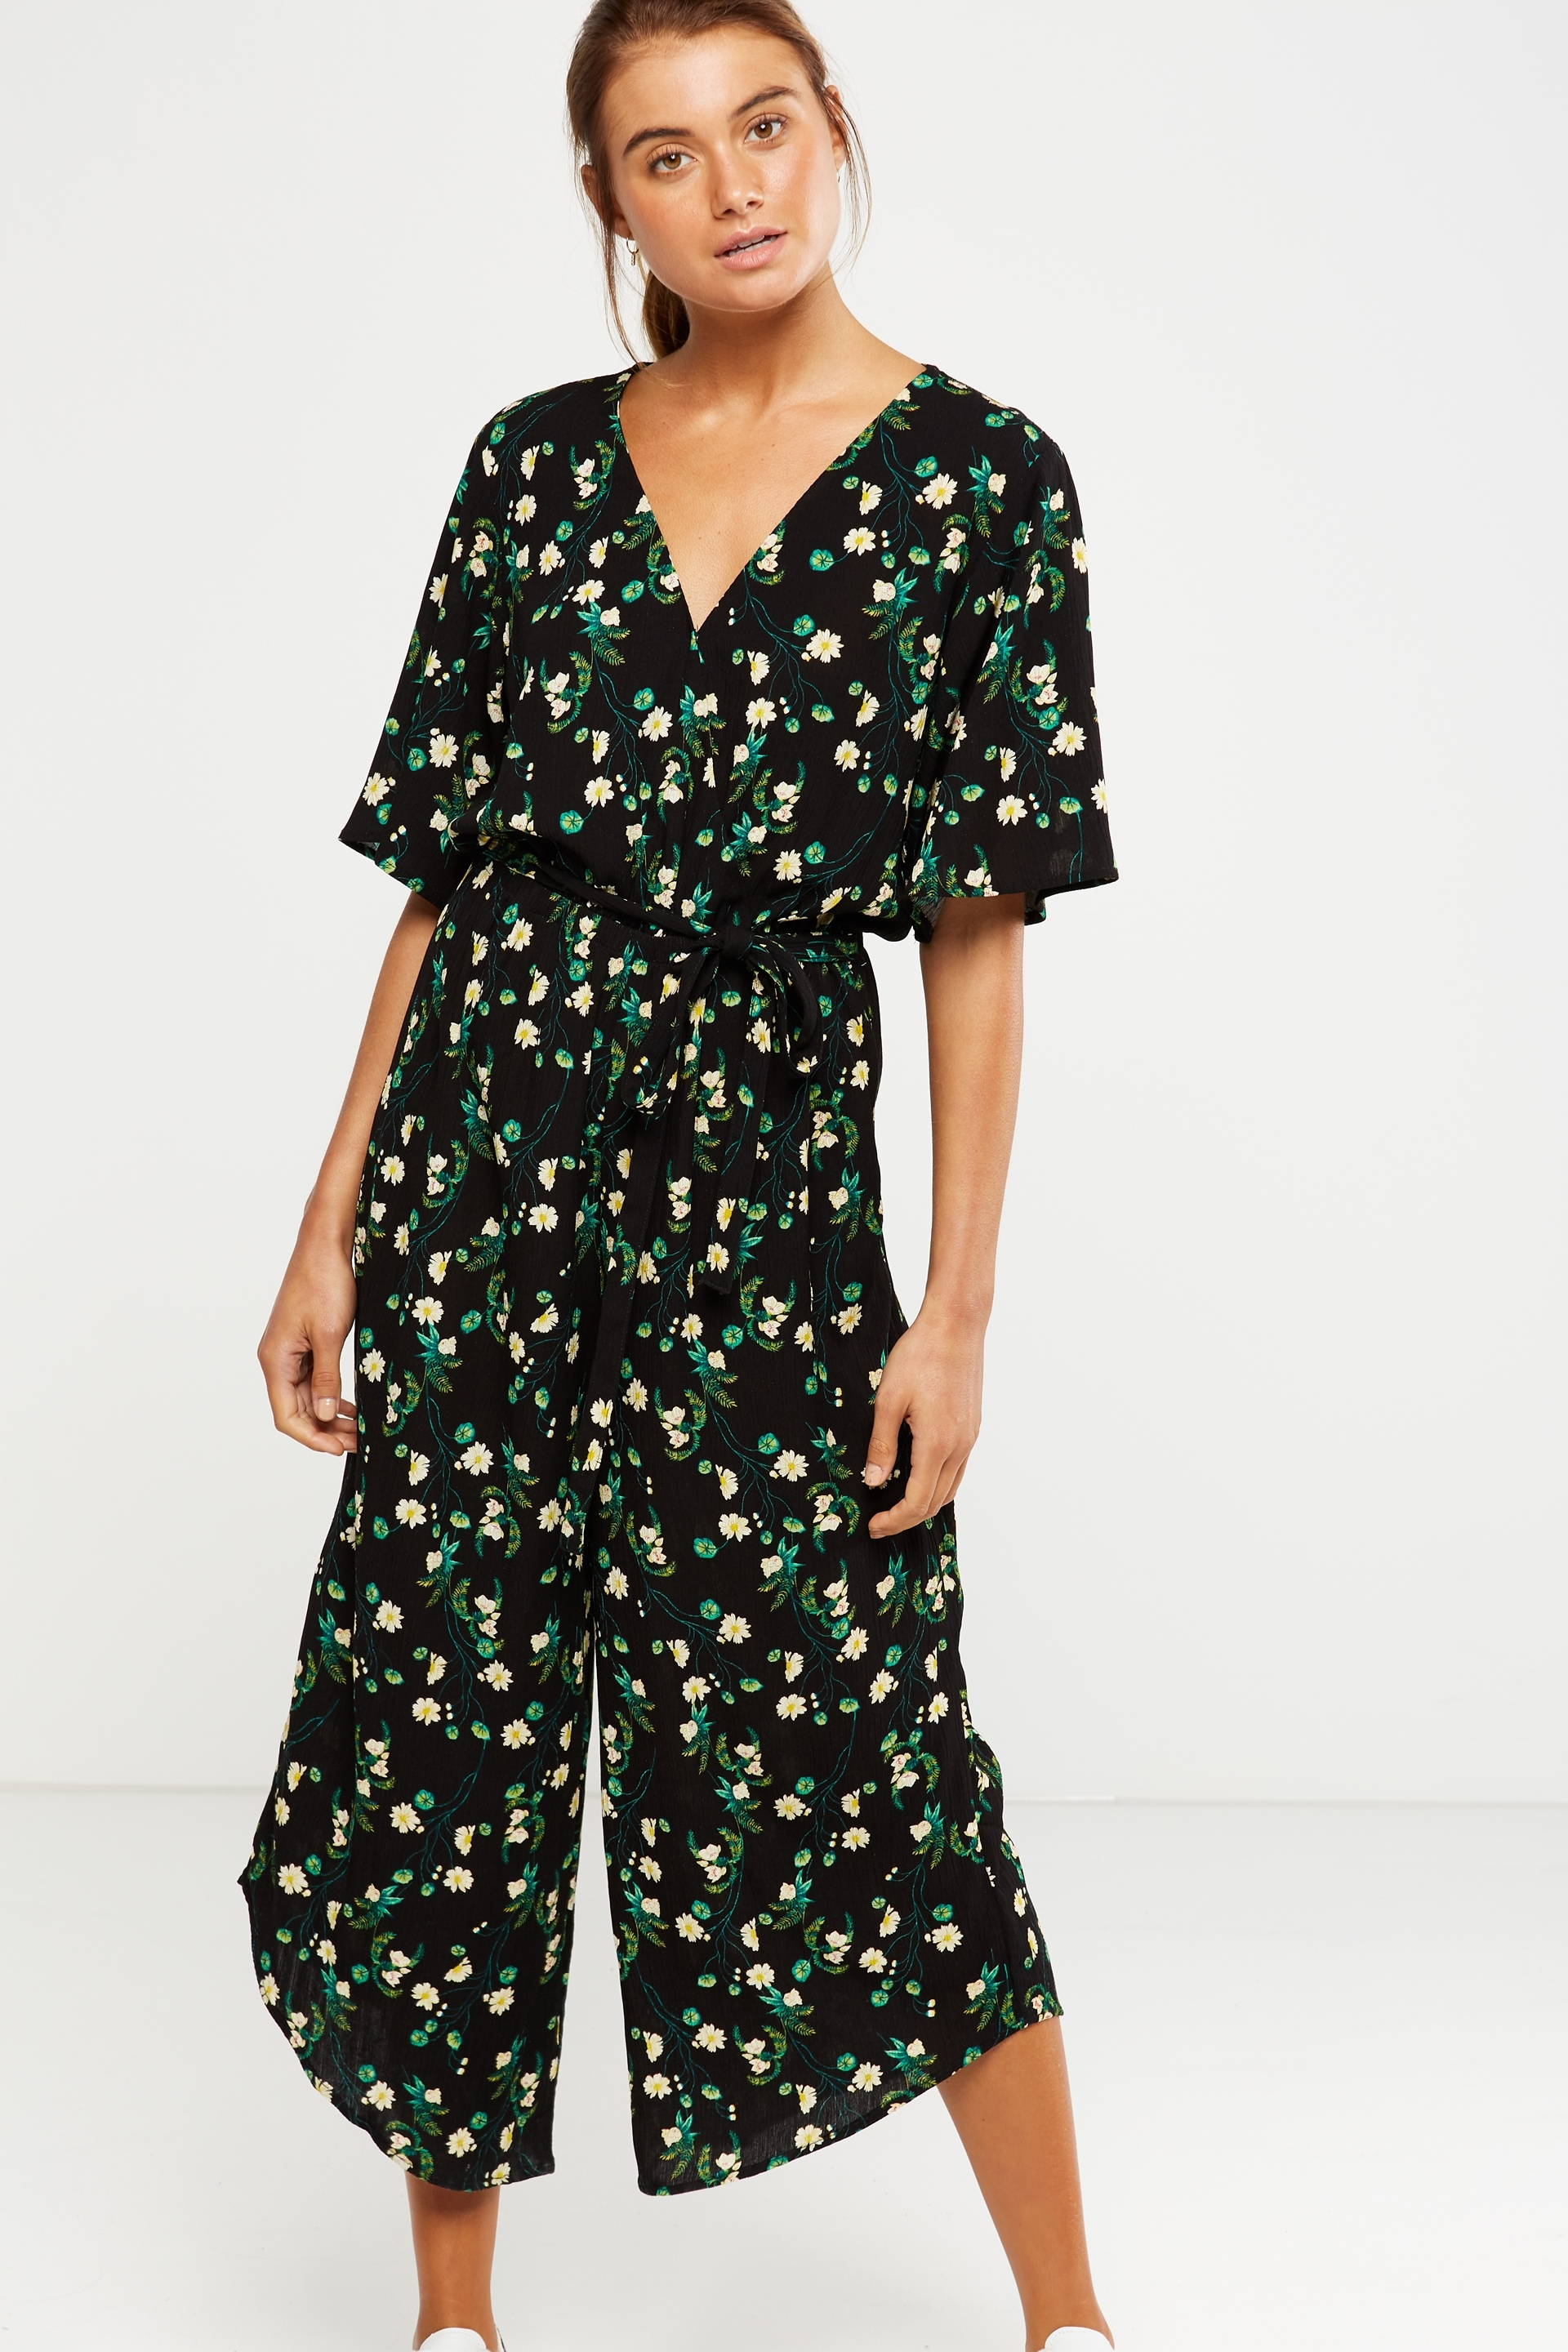 67853ad70b9 Cotton On Women - Woven Angel Jumpsuit - Daisy floral black